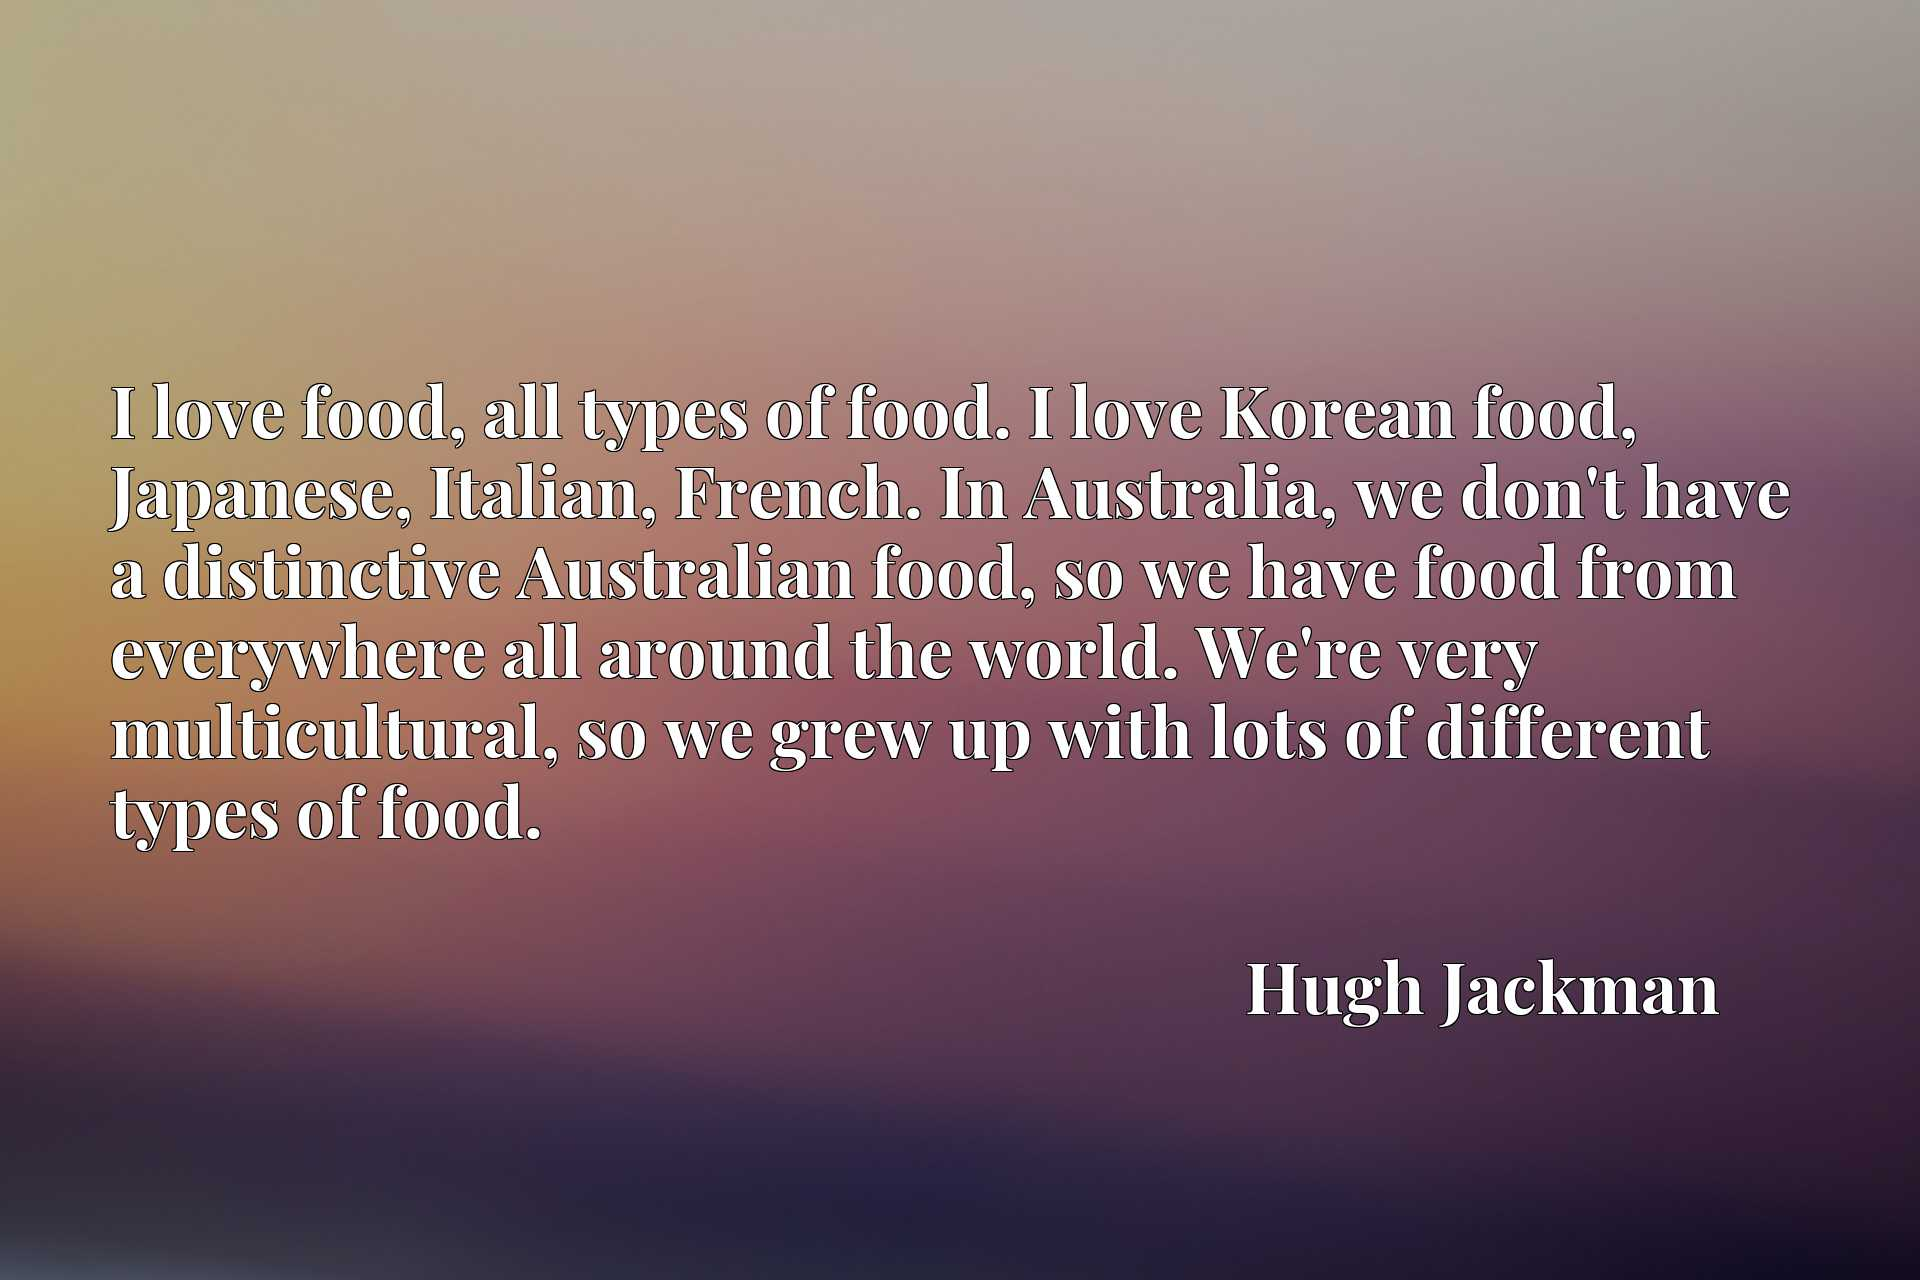 I love food, all types of food. I love Korean food, Japanese, Italian, French. In Australia, we don't have a distinctive Australian food, so we have food from everywhere all around the world. We're very multicultural, so we grew up with lots of different types of food.